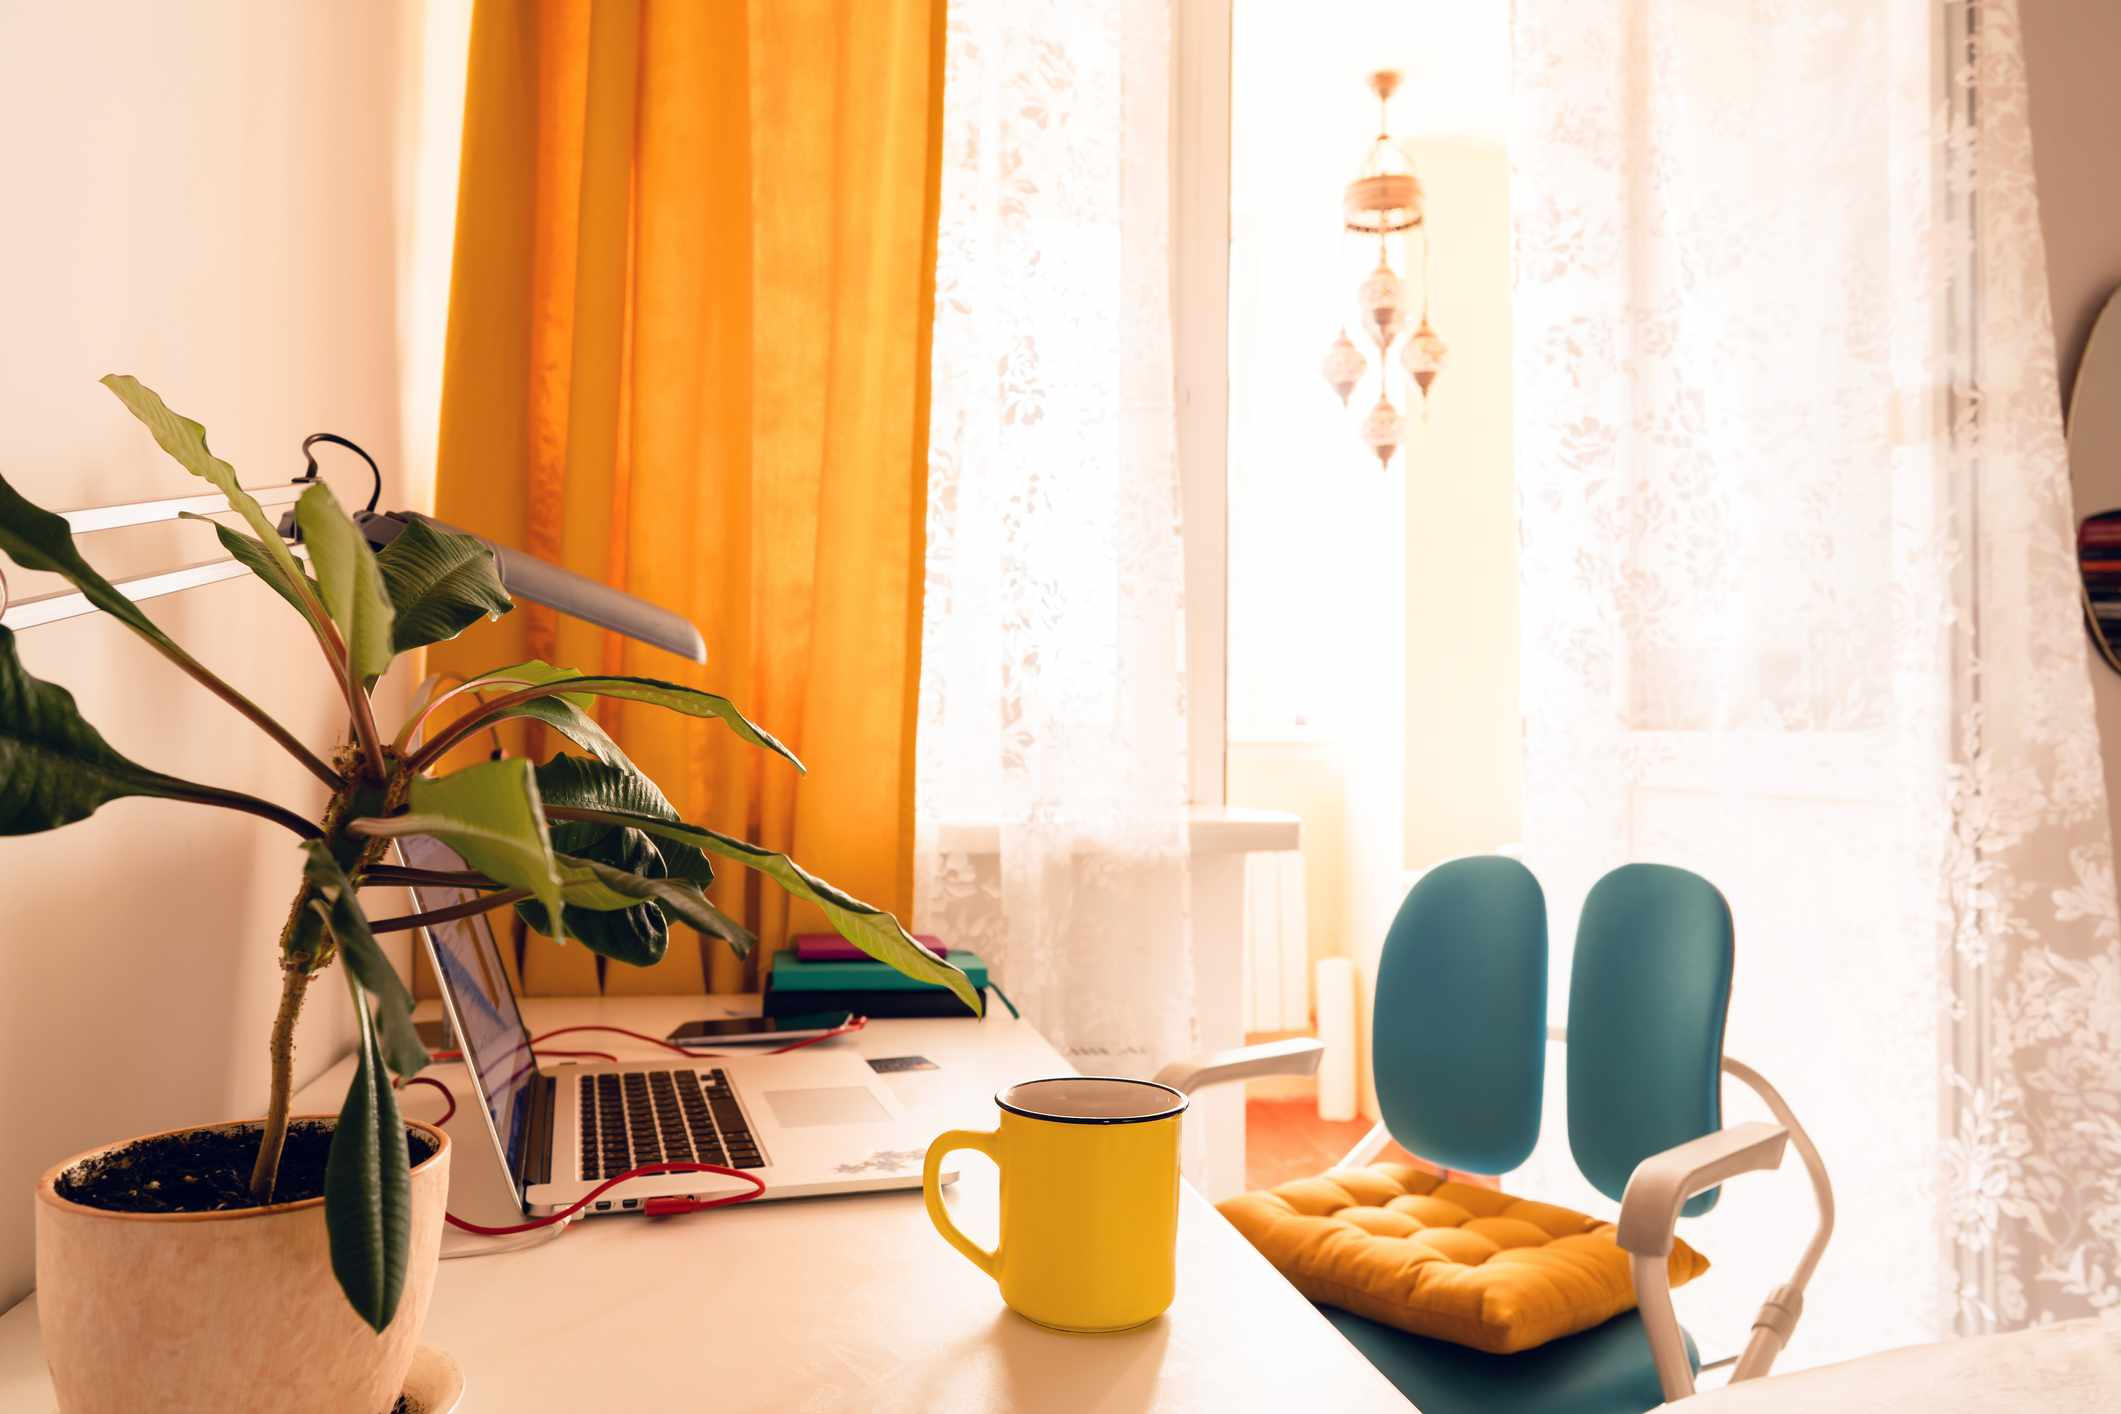 Sunny corner home office space with yellow curtains and plant on desk.